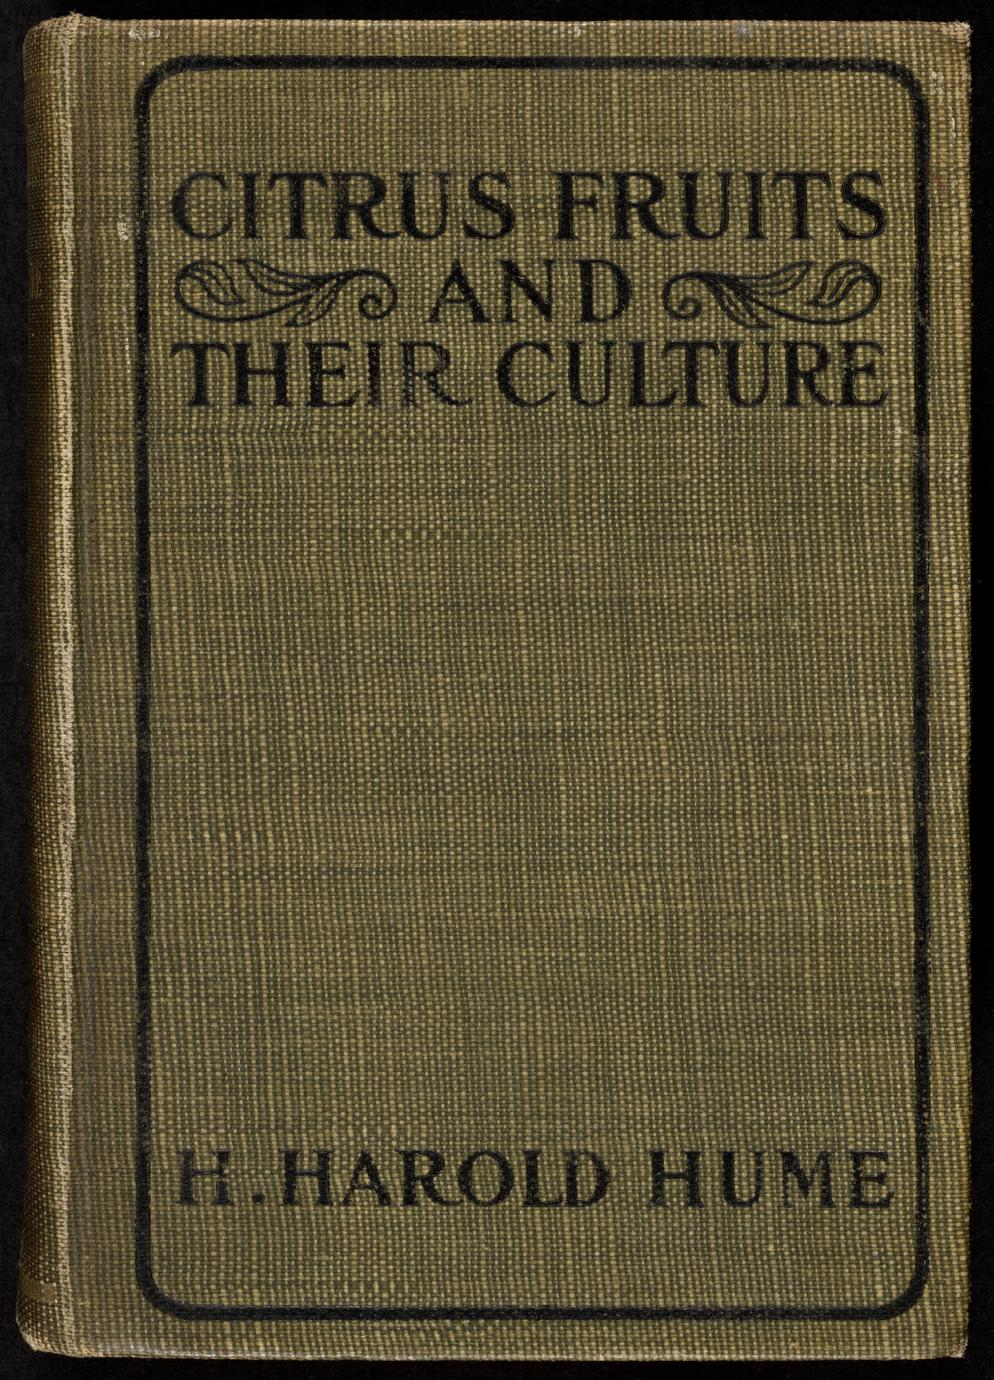 Citrus fruits and their culture (1 of 2)